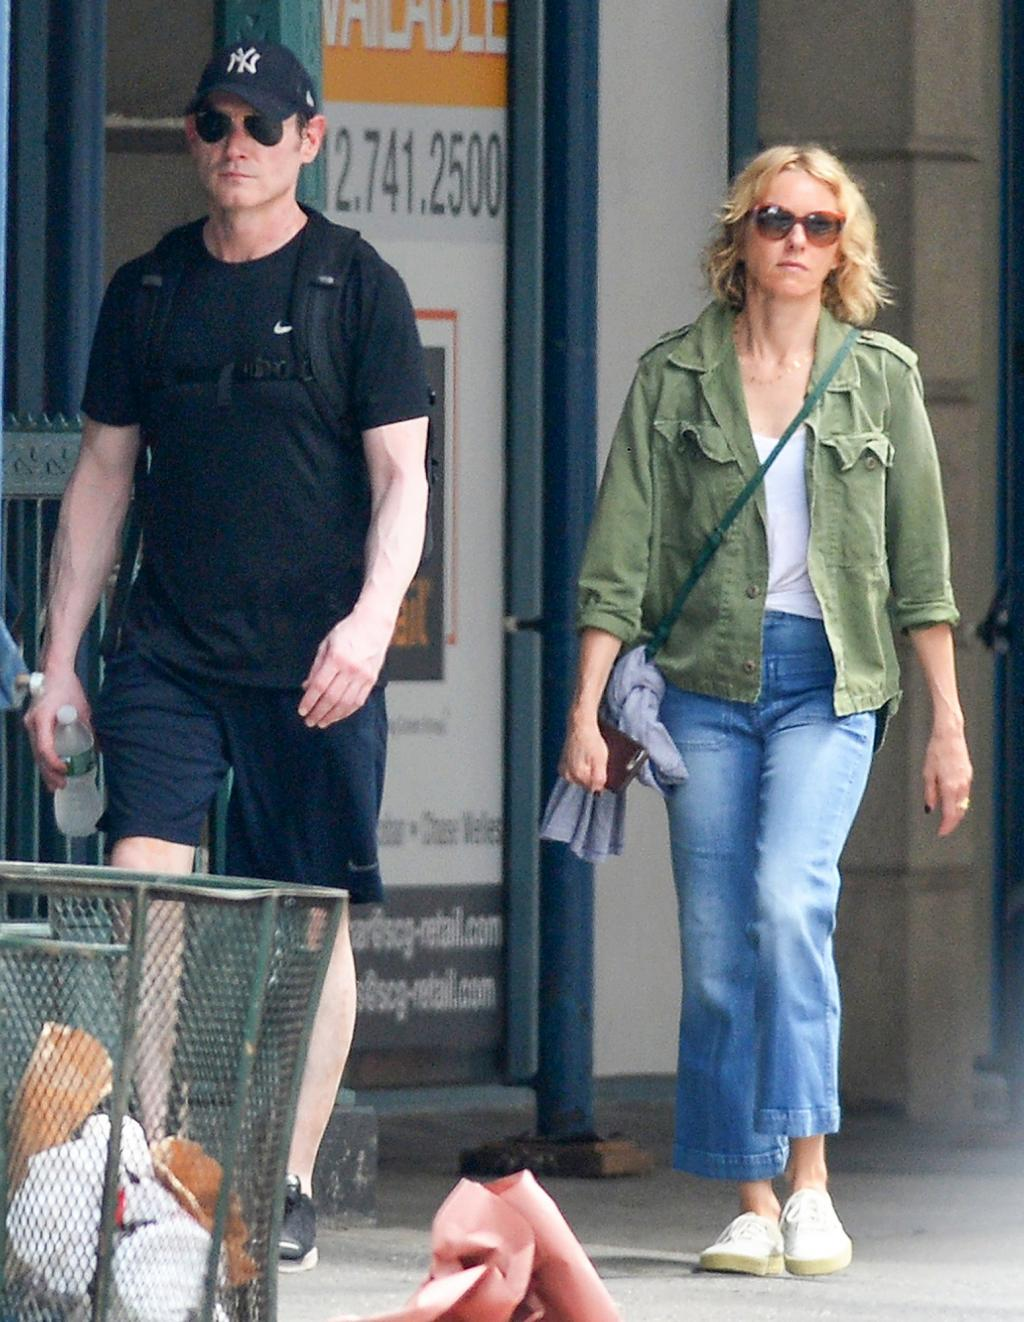 Naomi Watts Dating Her Gypsy Costar Billy Crudup As They Take a Stroll in New York City